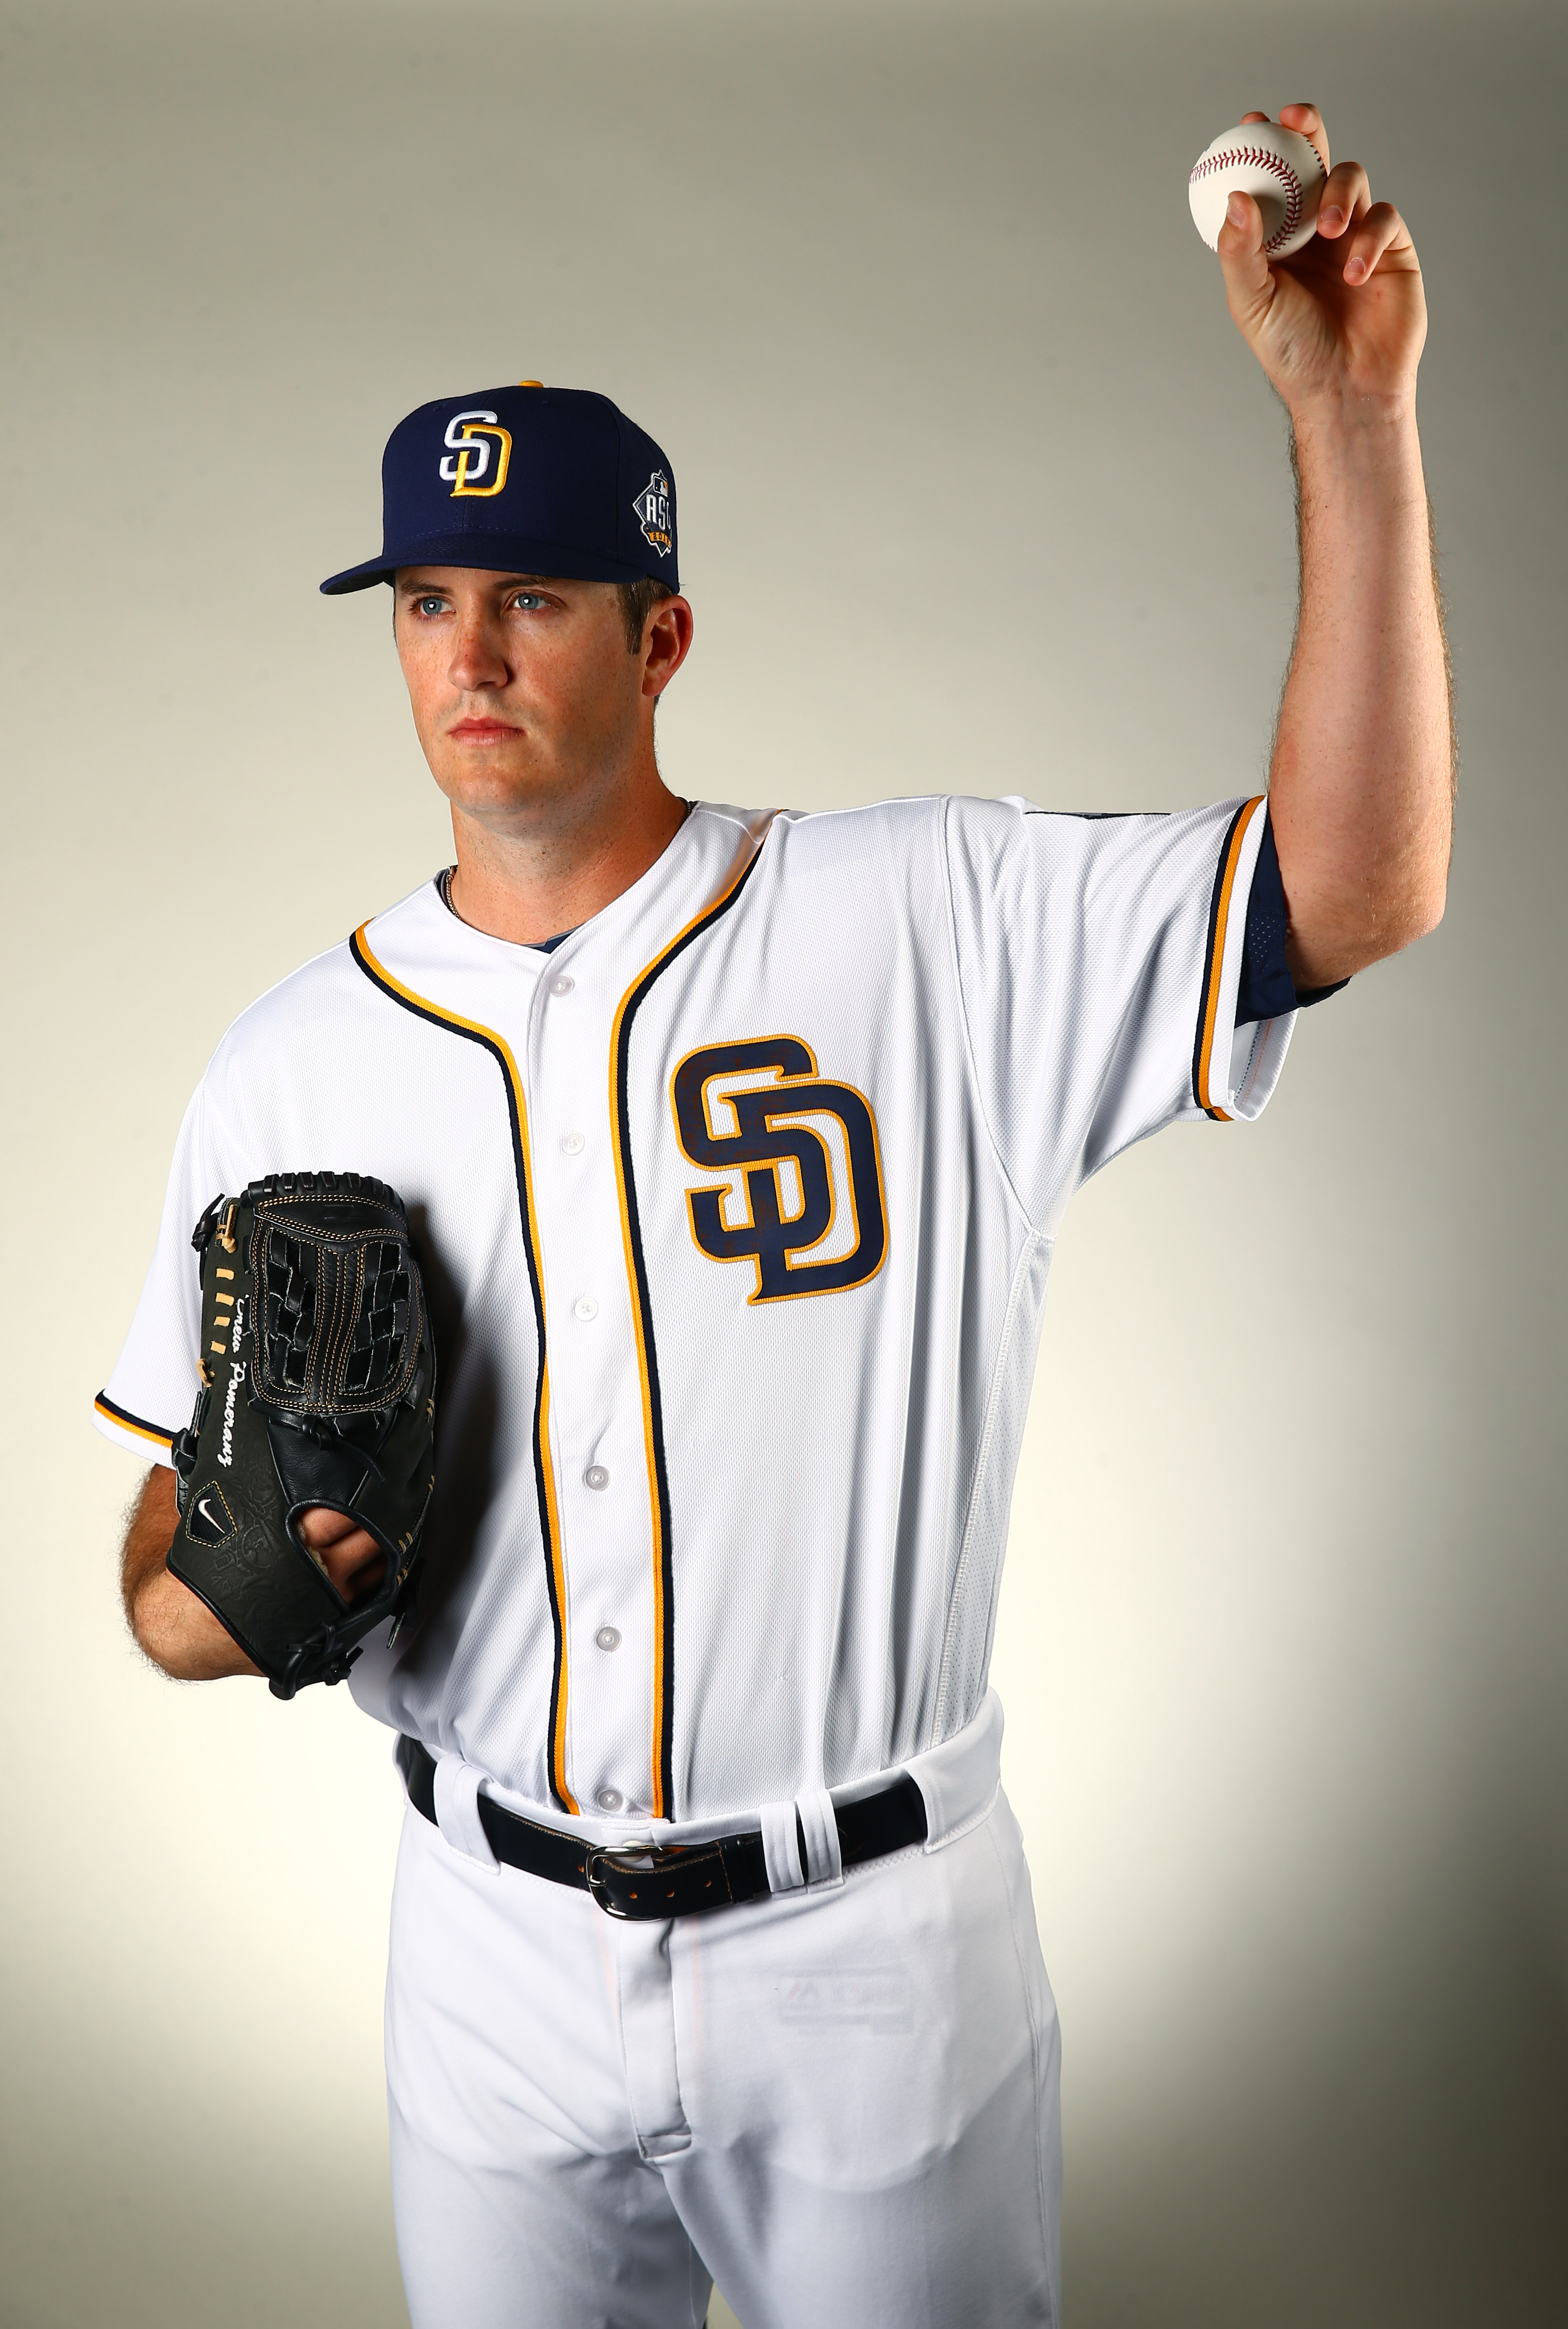 fe8c6a871 Offseason In Review  San Diego Padres - MLB Trade Rumors